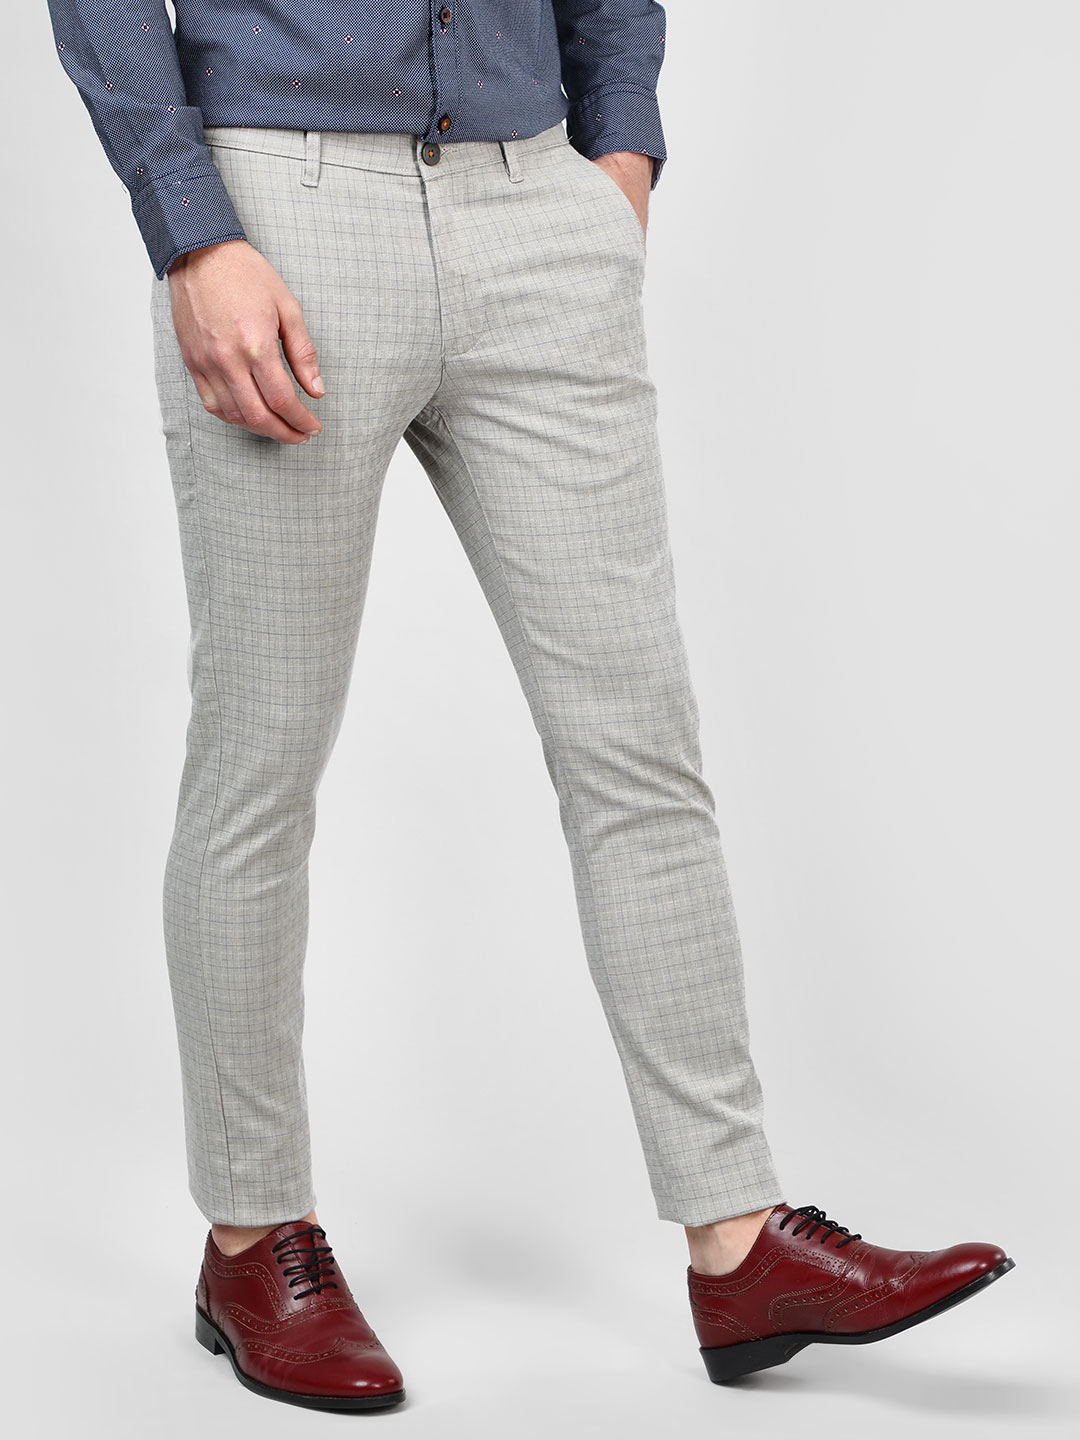 SCULLERS Grey Yarn Dyed Checkered Trousers 1